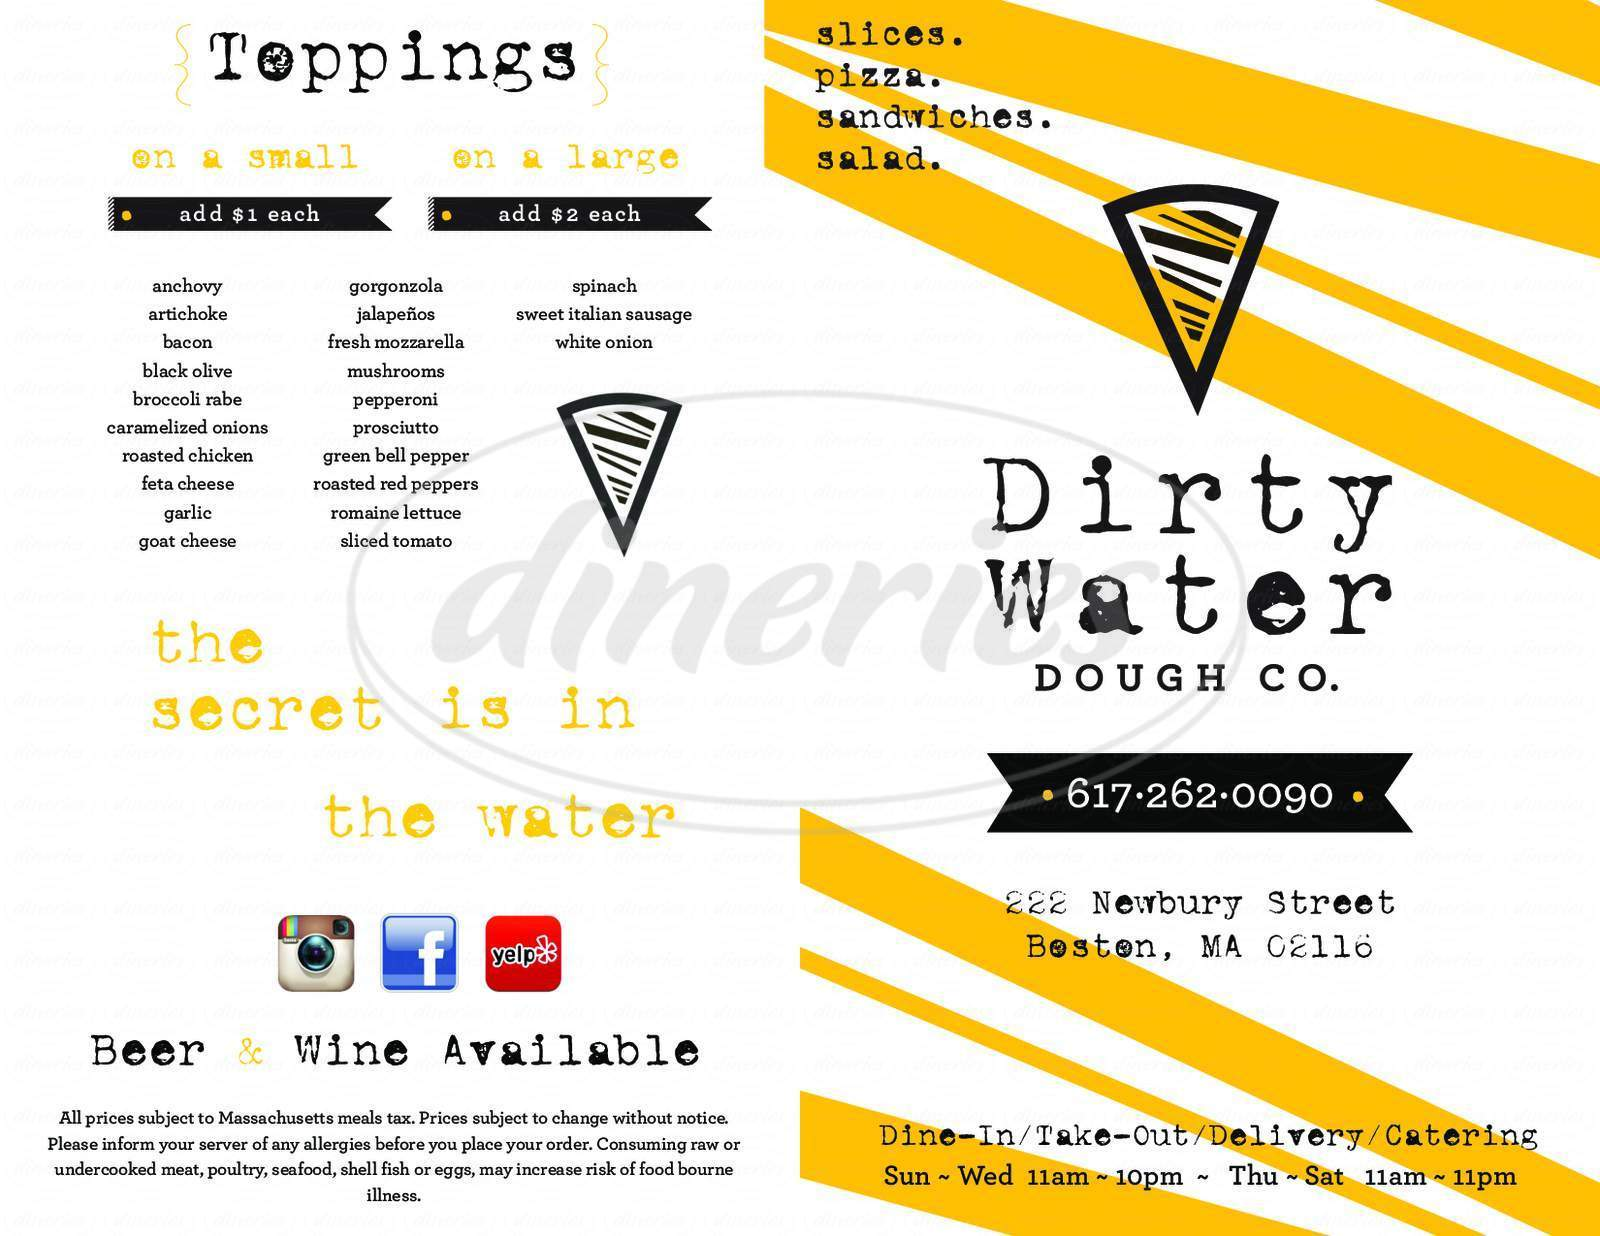 menu for Dirty Water Dough Company